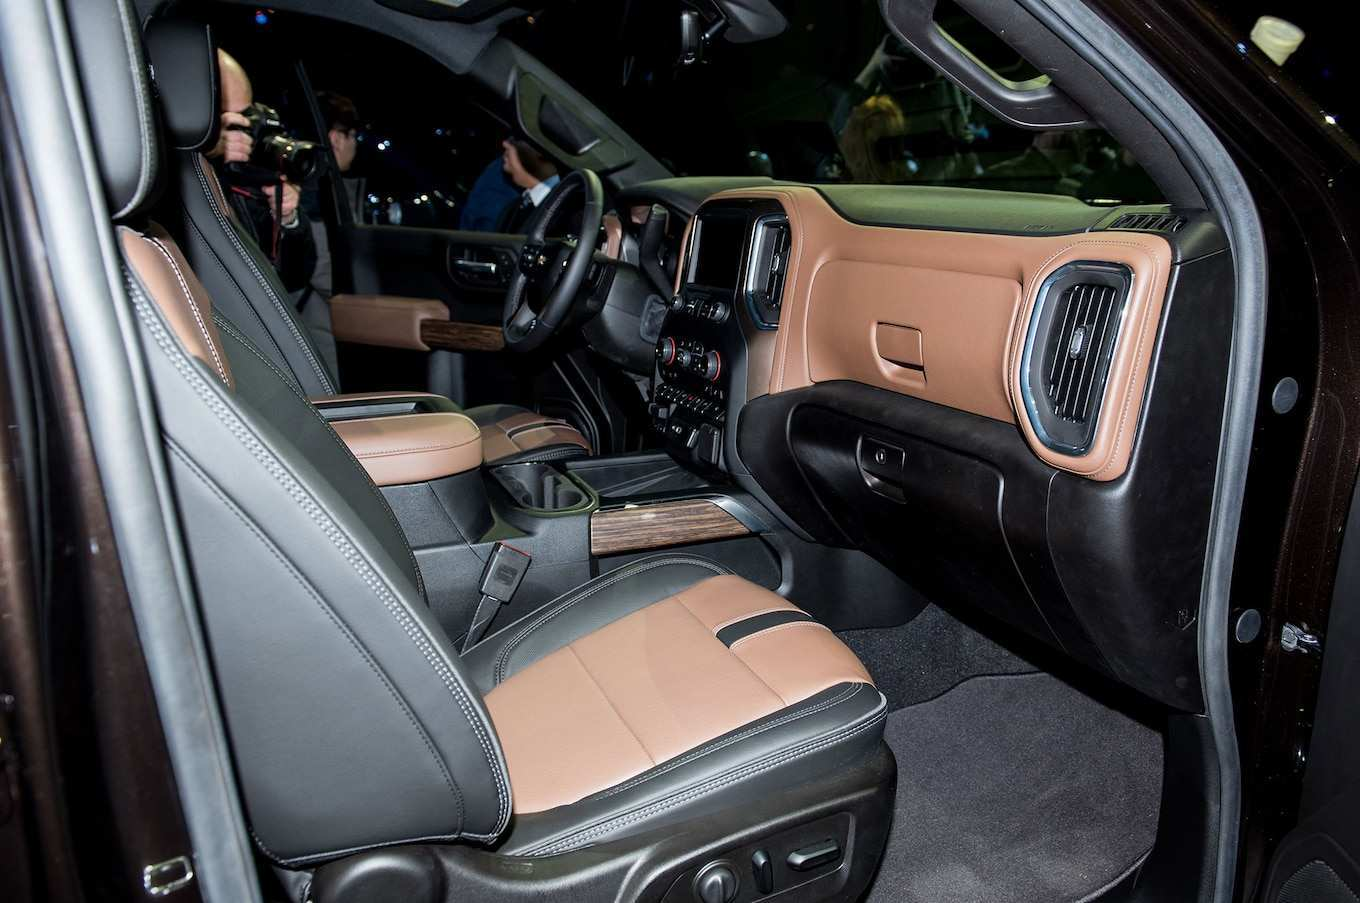 59 All New 2019 Chevrolet High Country Interior Prices